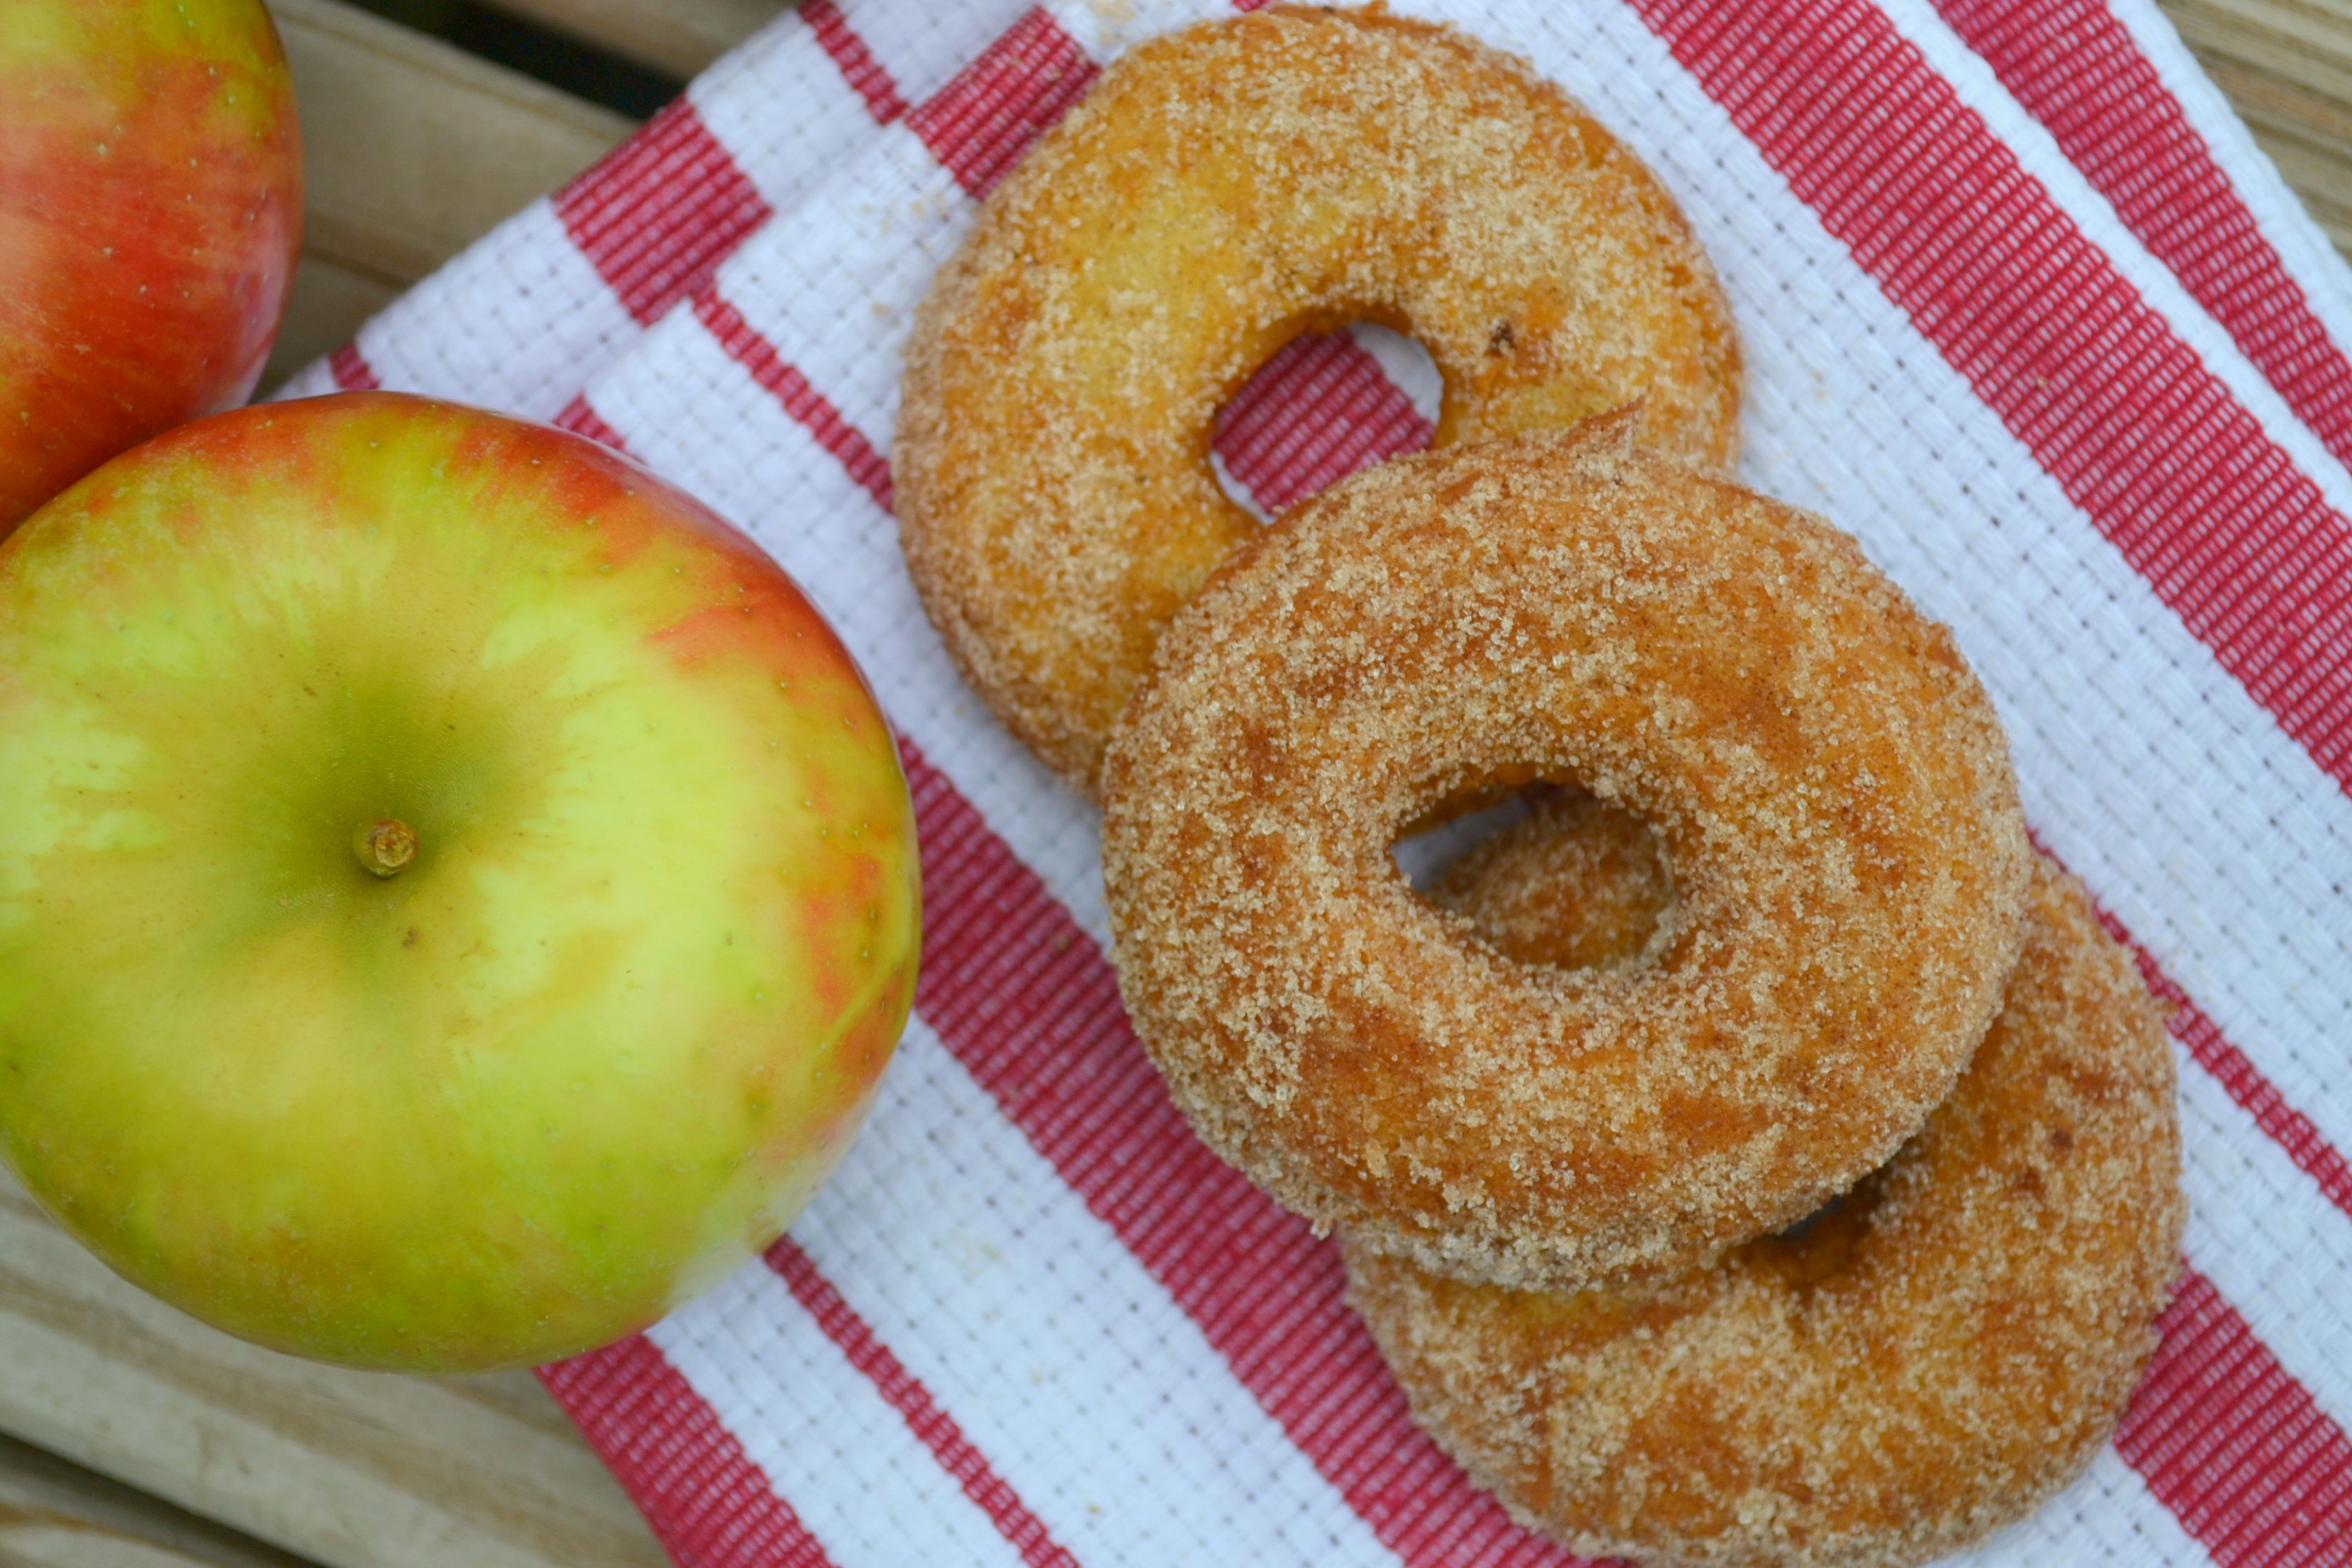 Apple Cider Doughnuts | Her View From Home